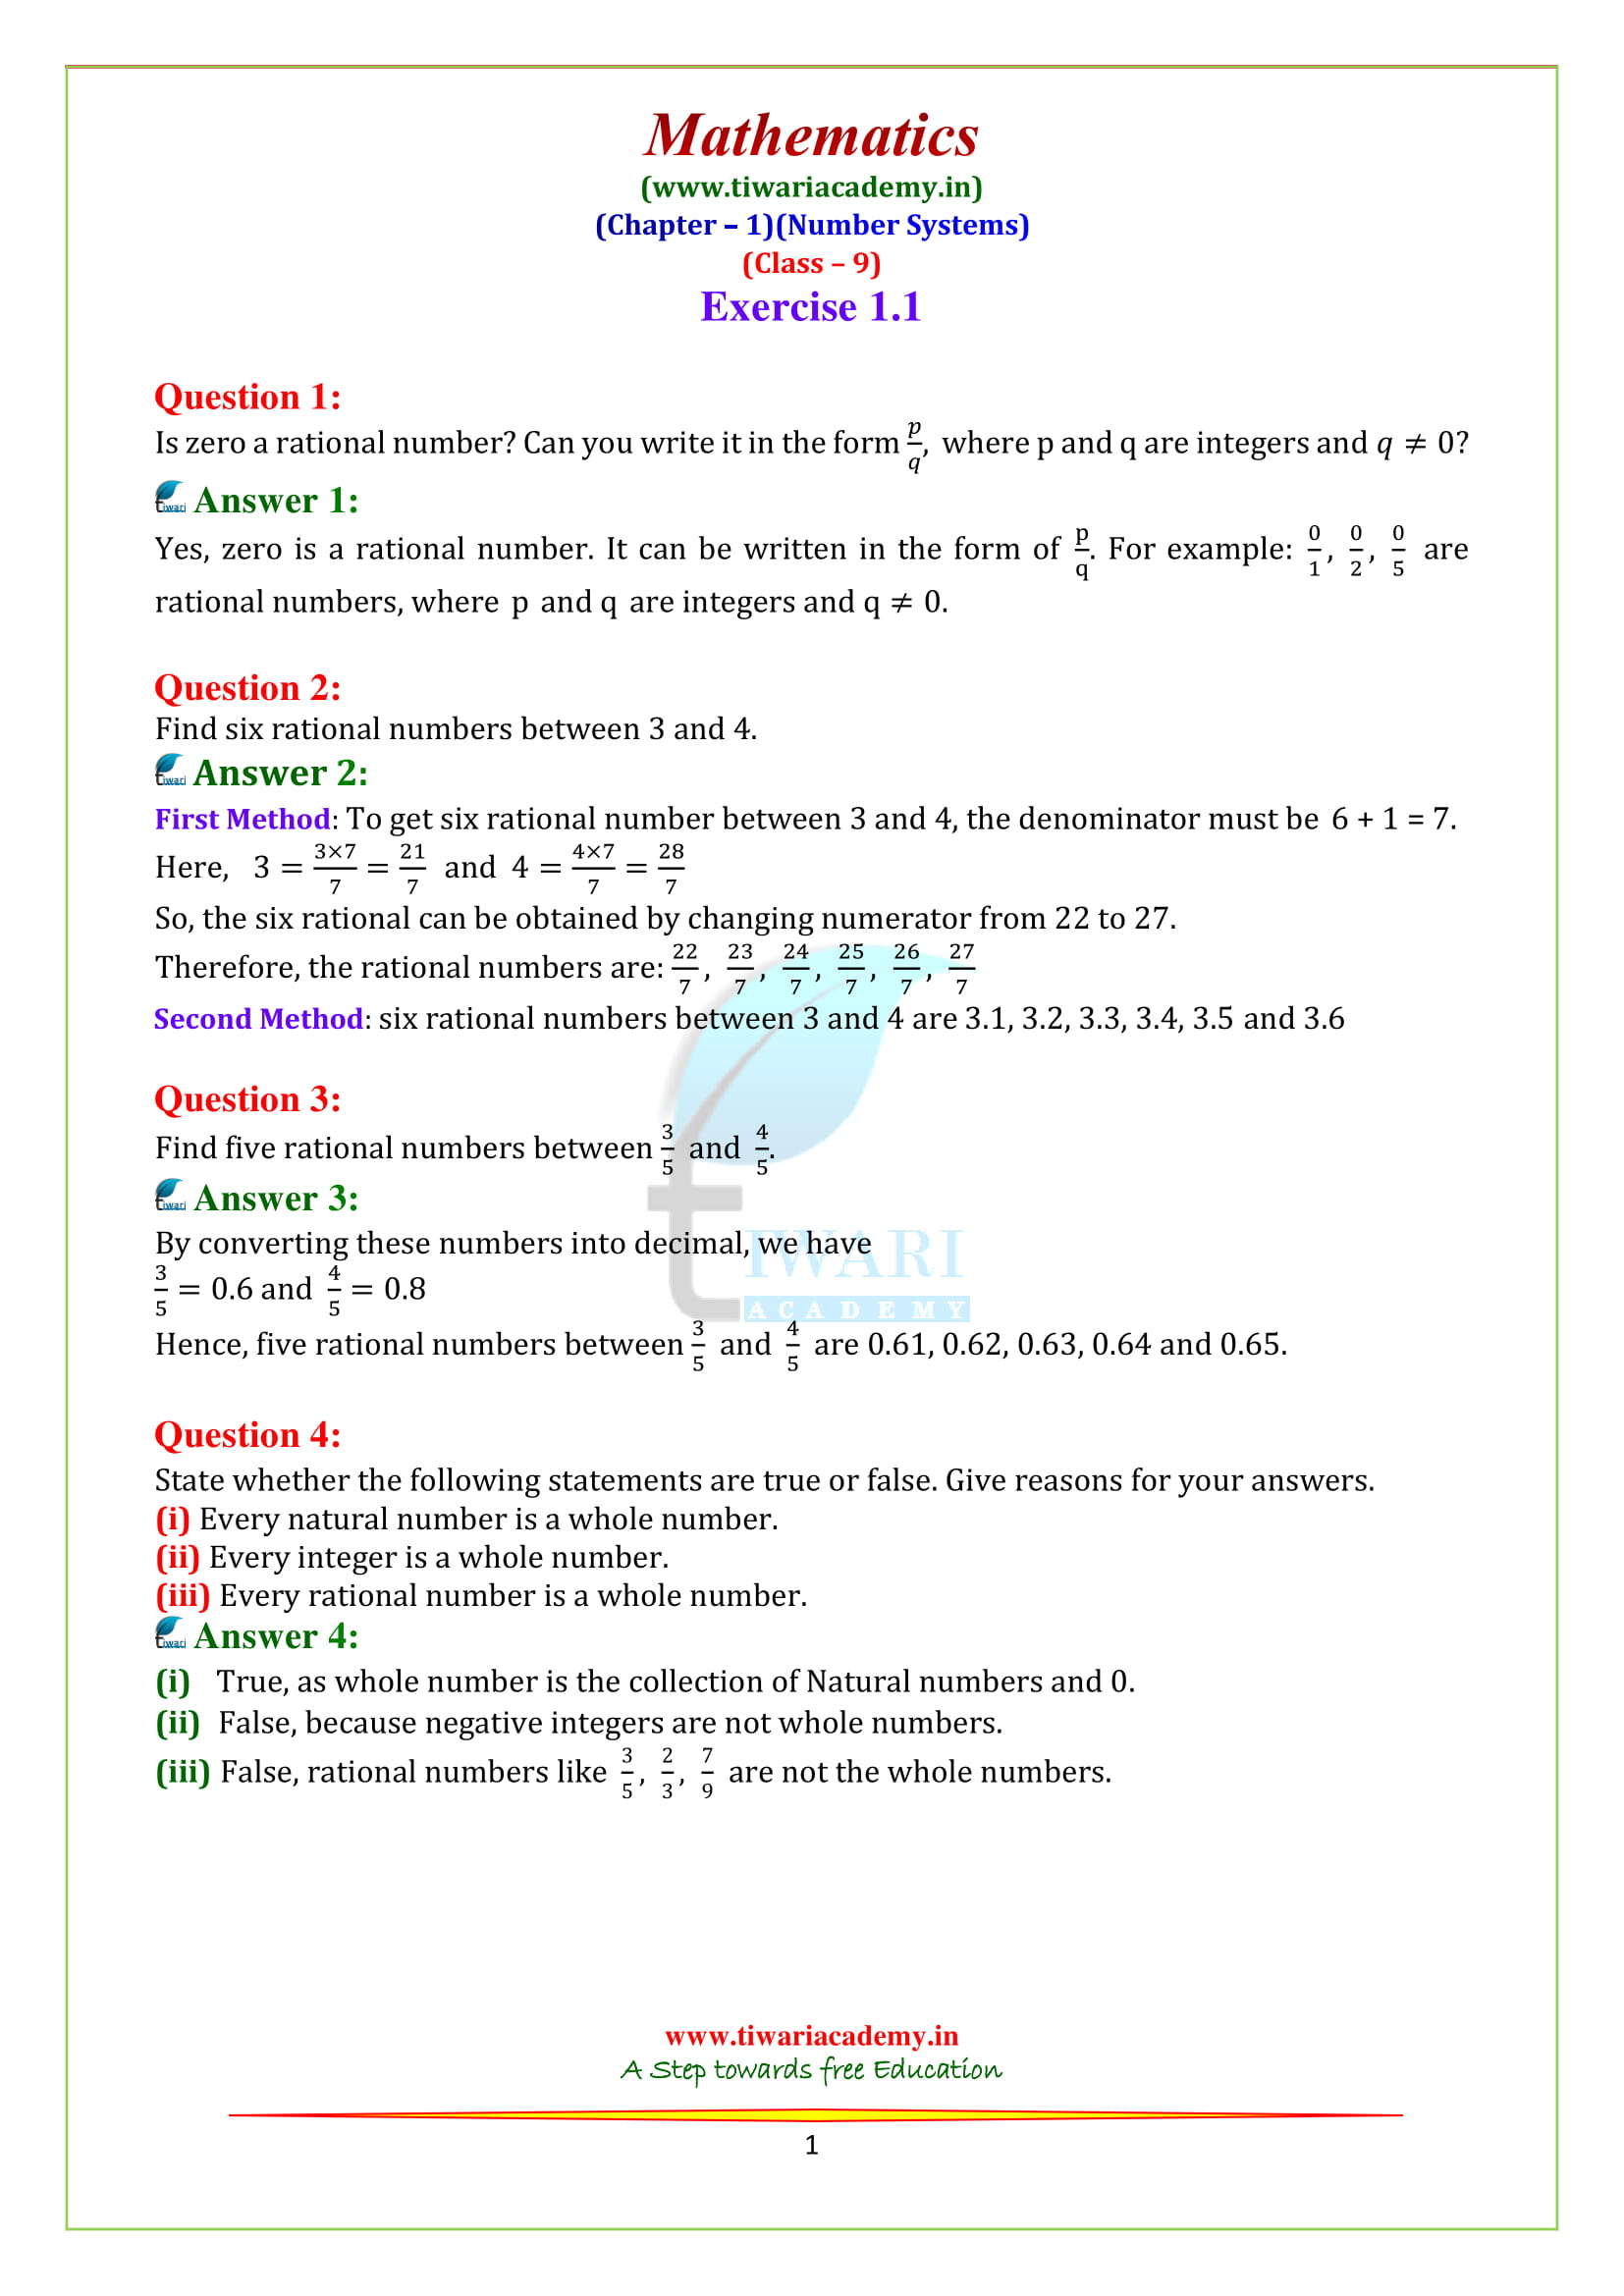 NCERT Solutions for Class 9 Maths Chapter 1 Exercise 1.1